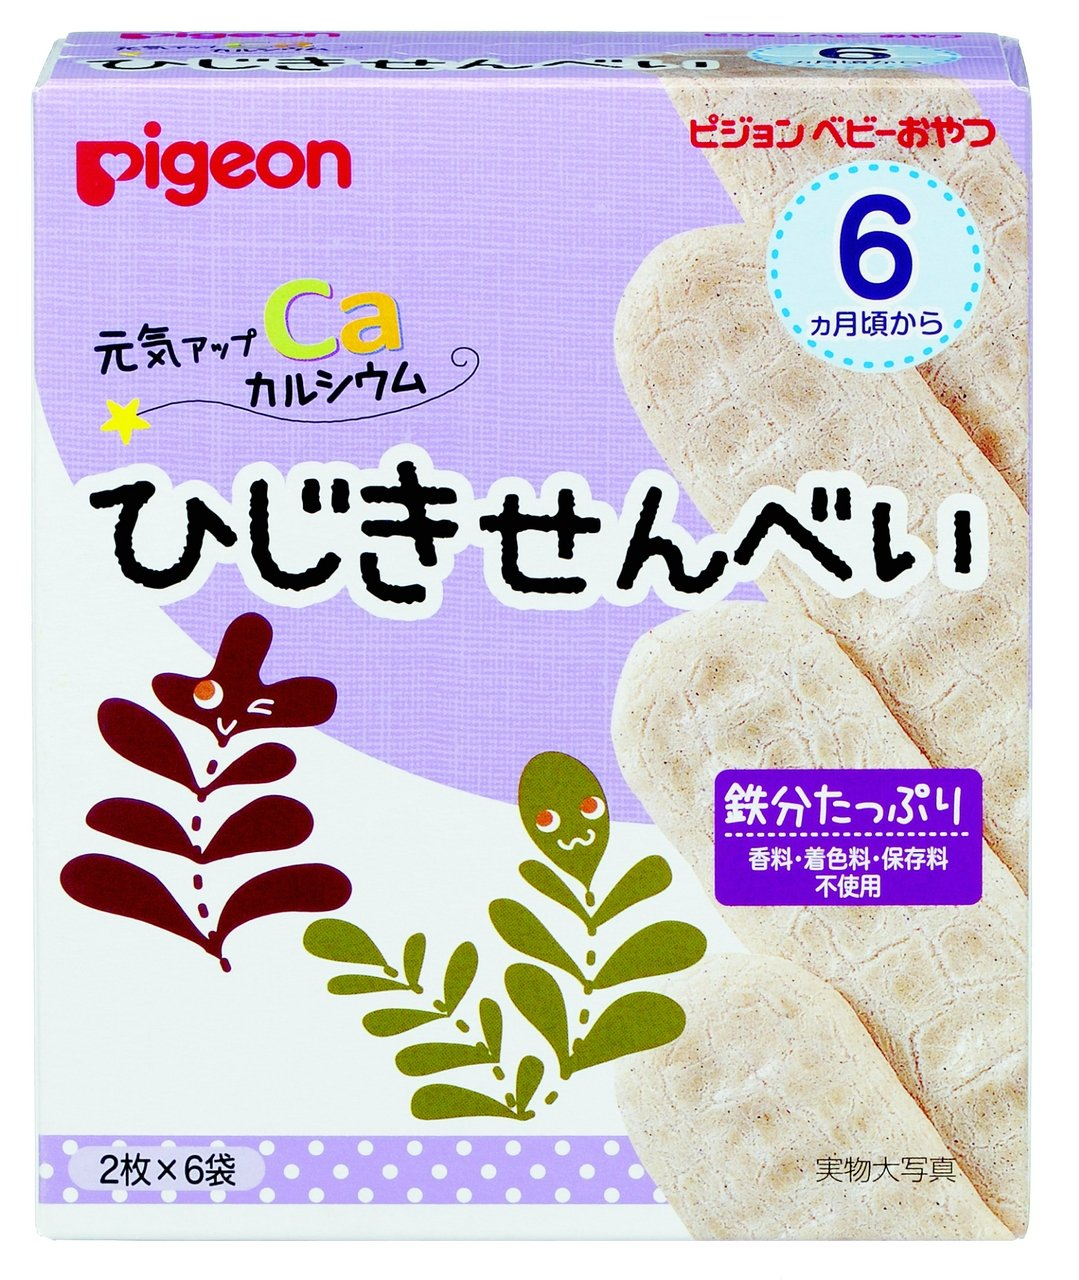 Pigeon baby snack healthy up calcium hijiki rice crackers 6 bags input ~ 12 pieces by Pigeon